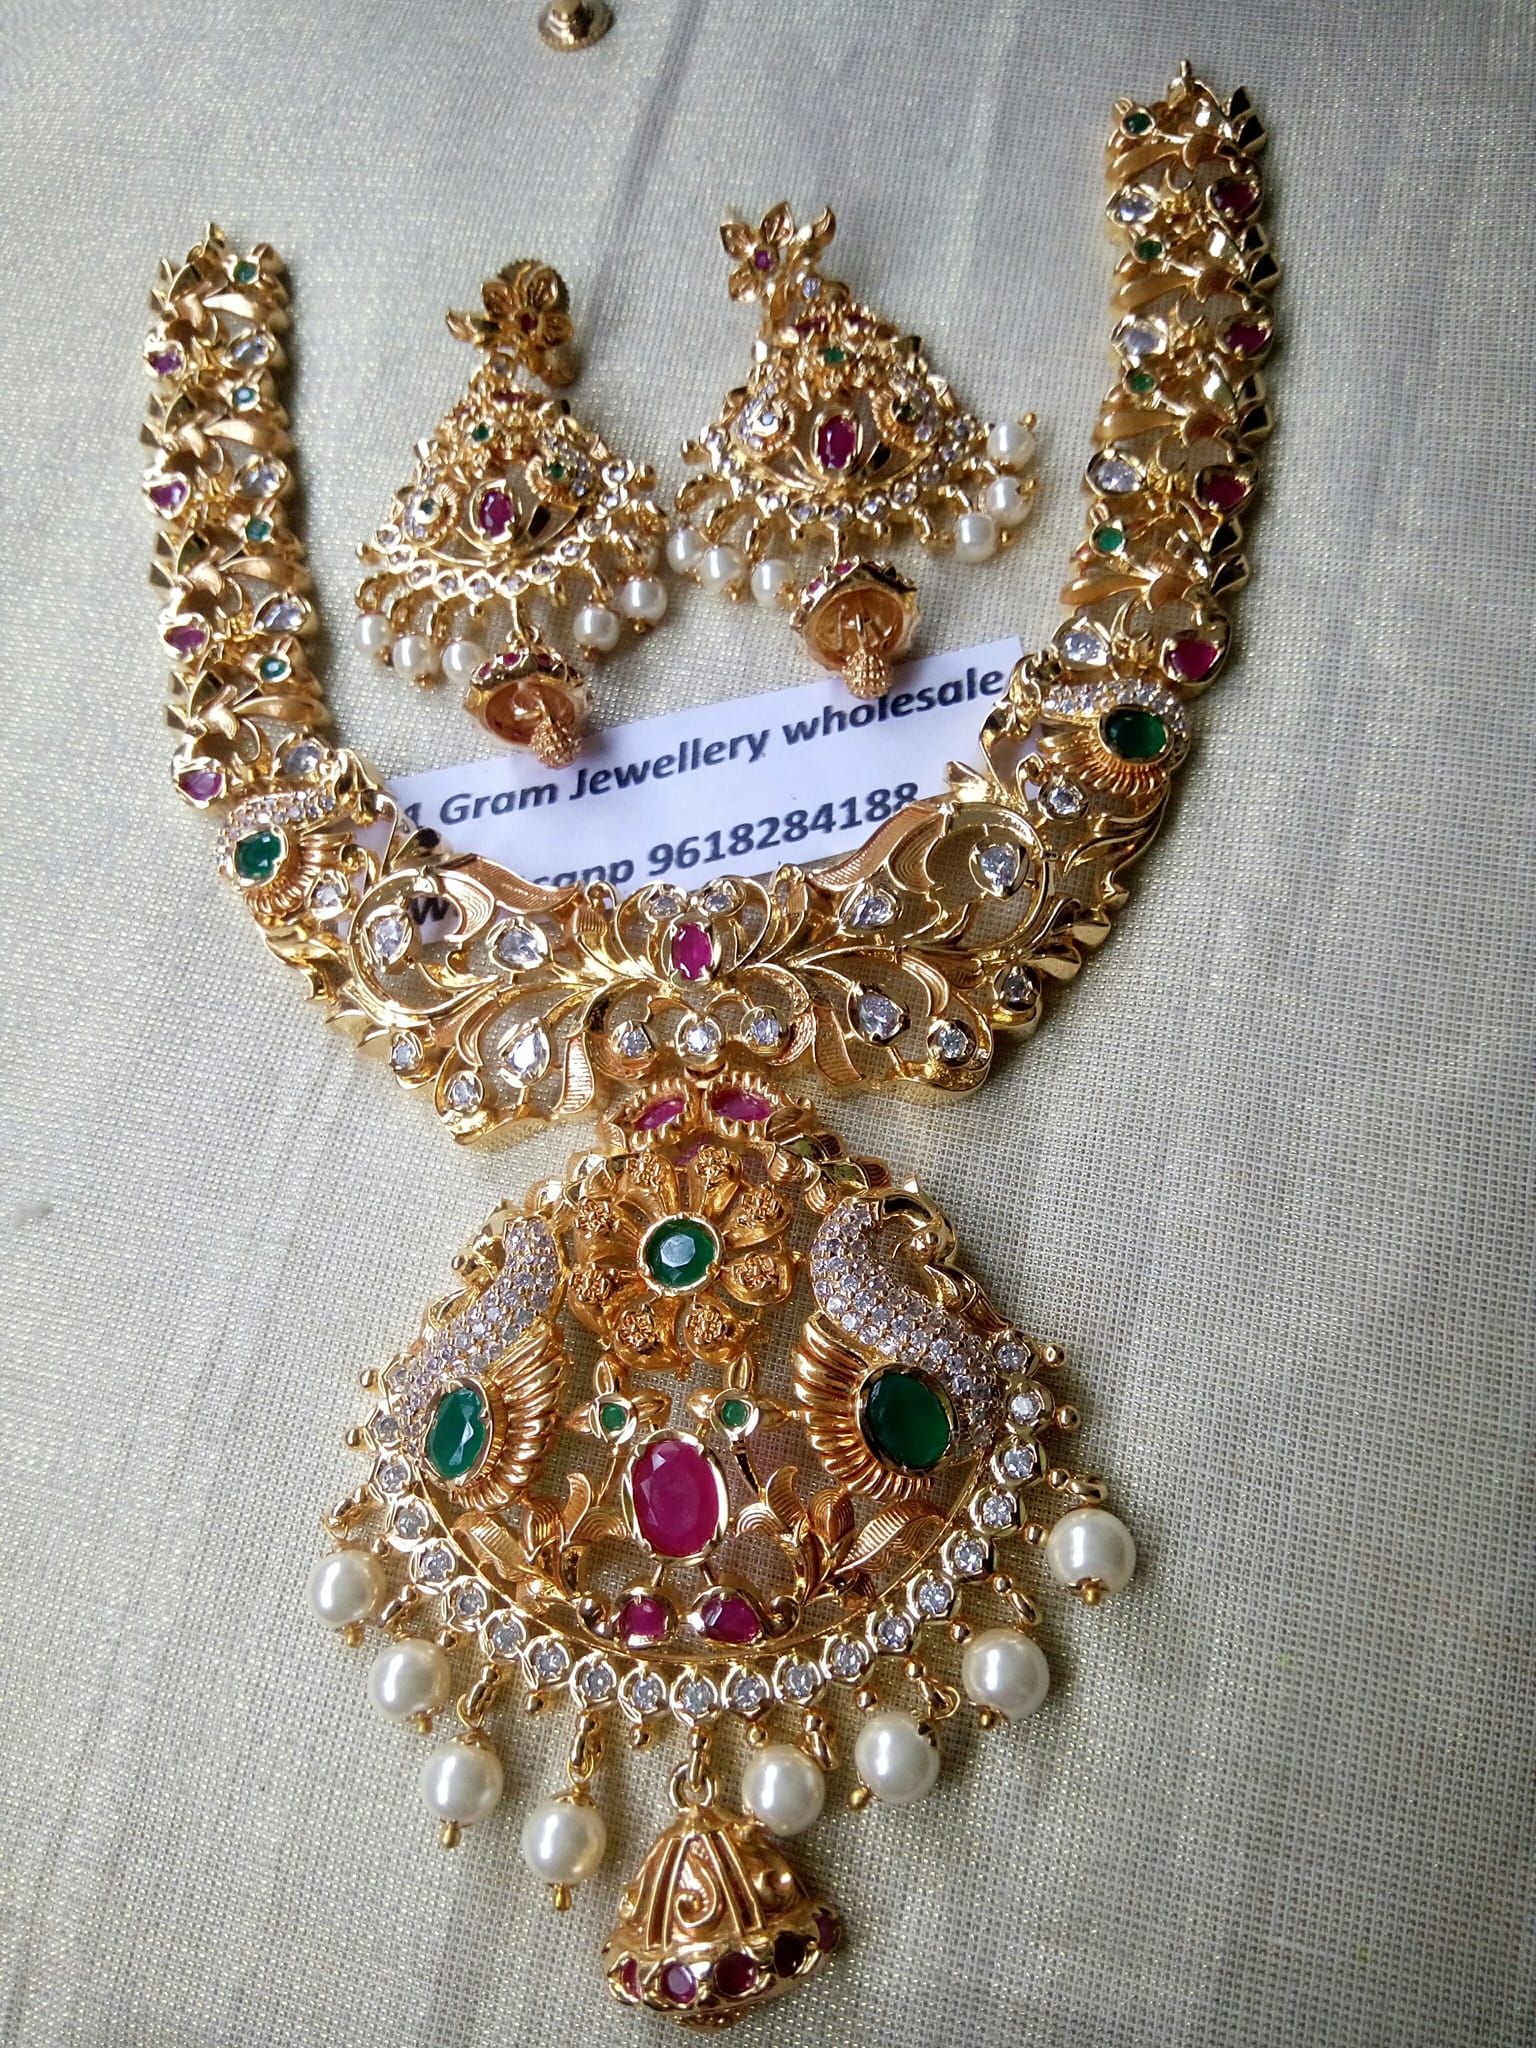 1 Gram Gold Jewellery Wholesale Contact 9618284188 1 Gram Gold Jewellery Cheap Gold Jewelry Wholesale Gold Jewelry